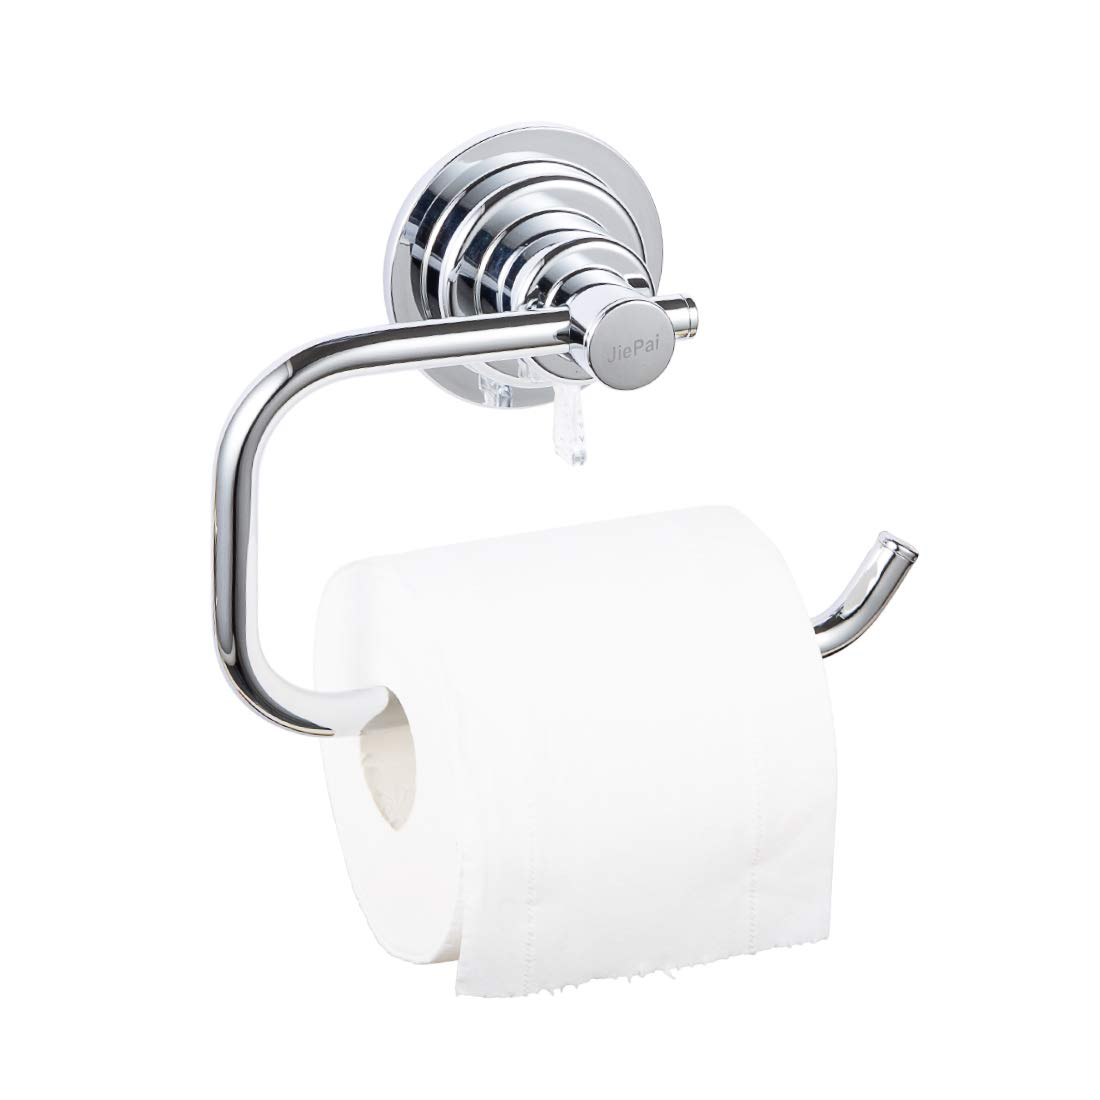 JIEPAI Suction Cup Pater Holder,Powerful Vacuum Suction Cup Toilet Paper Roll Holder,Wall Mount Towel/Tissue Rack for Bathroom & Kitchen-Drill Free,Chrome